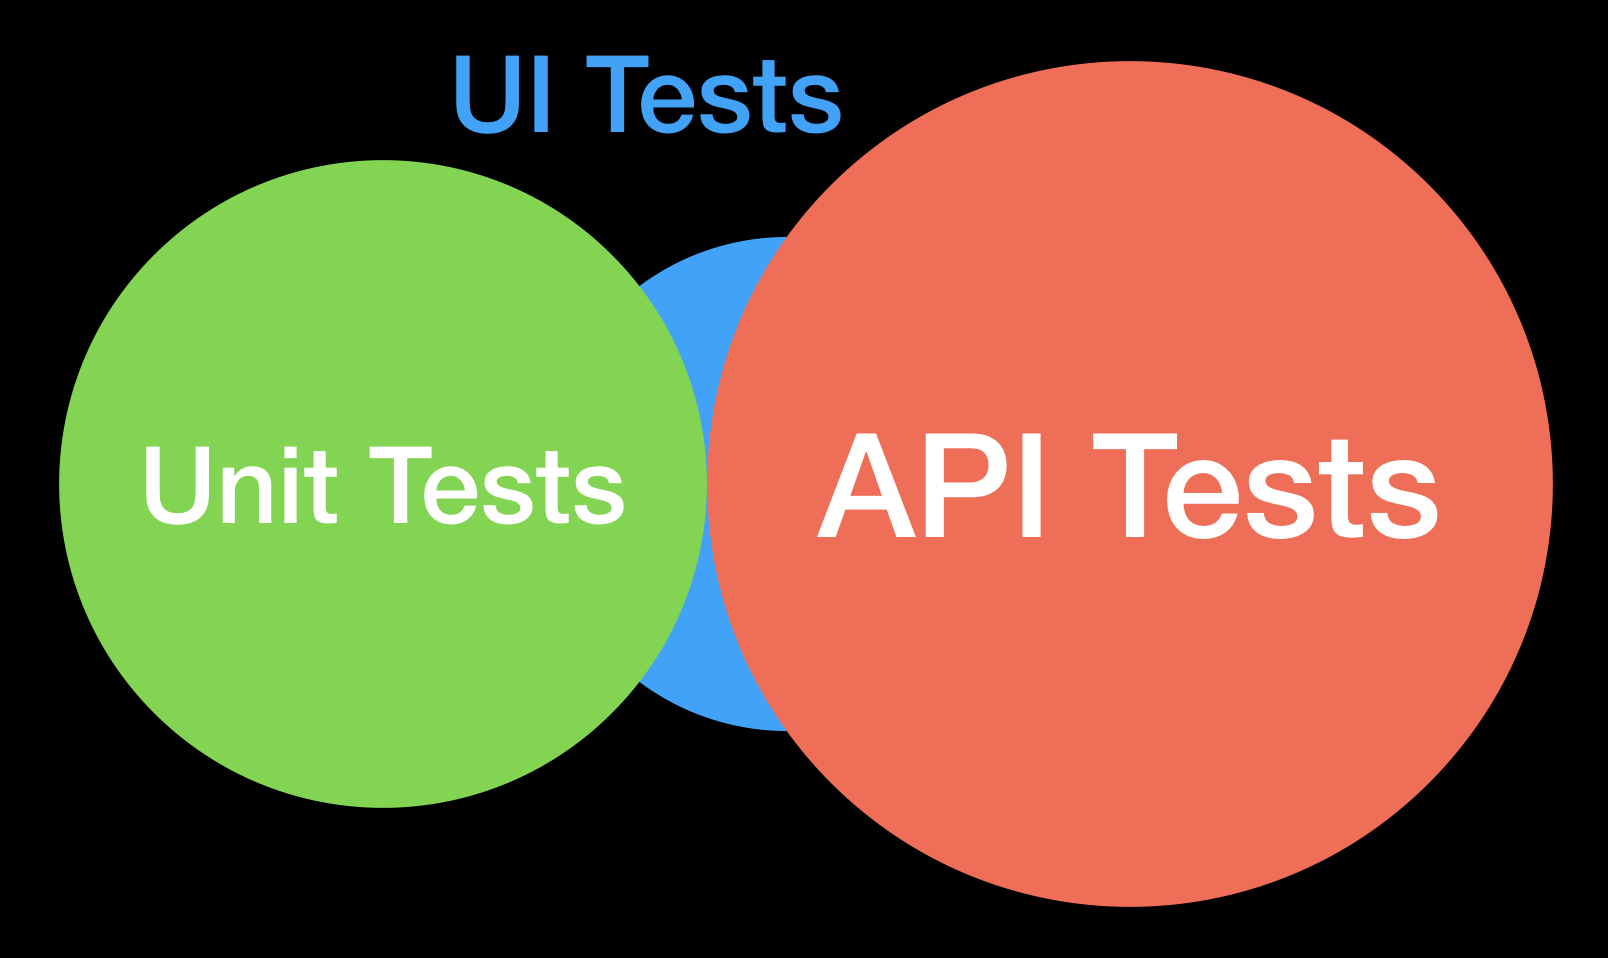 The majority of the UI tests can be broken to API and Unit tests